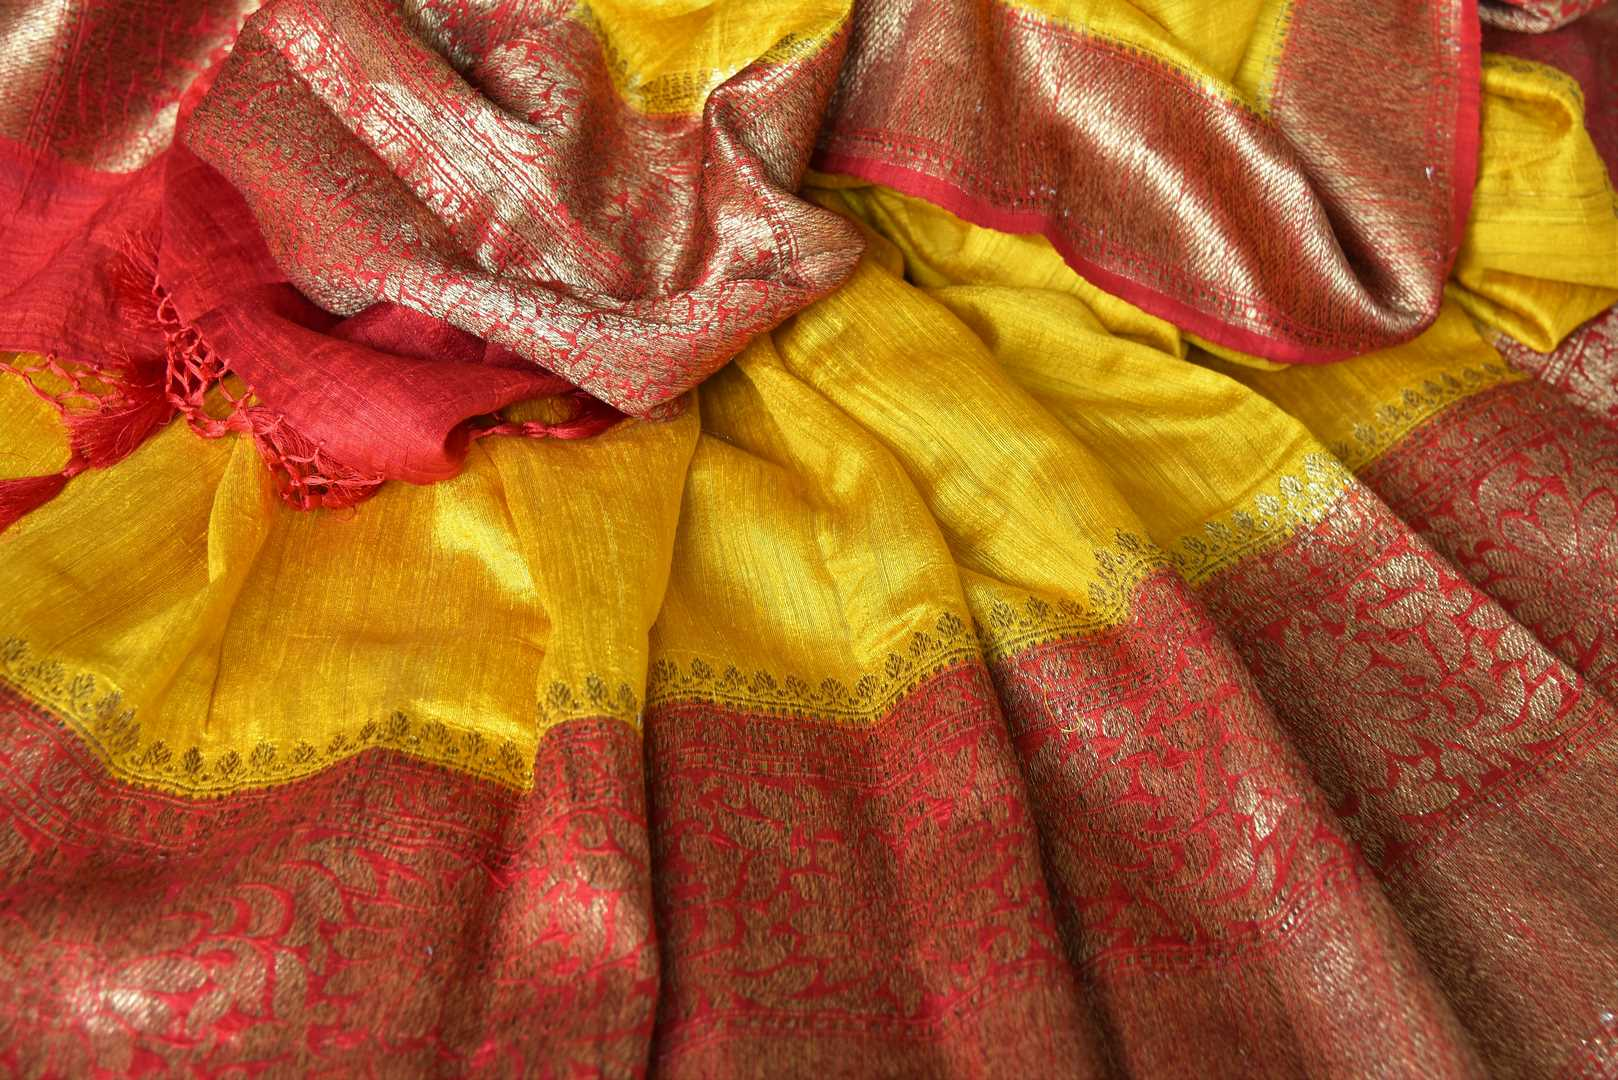 Exude a flair of elegance in this scintillating bright yellow matka banarsi silk saree. It comes with a gorgeous red zari border and complemented well with a contrasting red zari designer blouse. Shop handcrafted silk sarees, linen sari, georgette saree online or visit Pure Elegance store, USA.-details